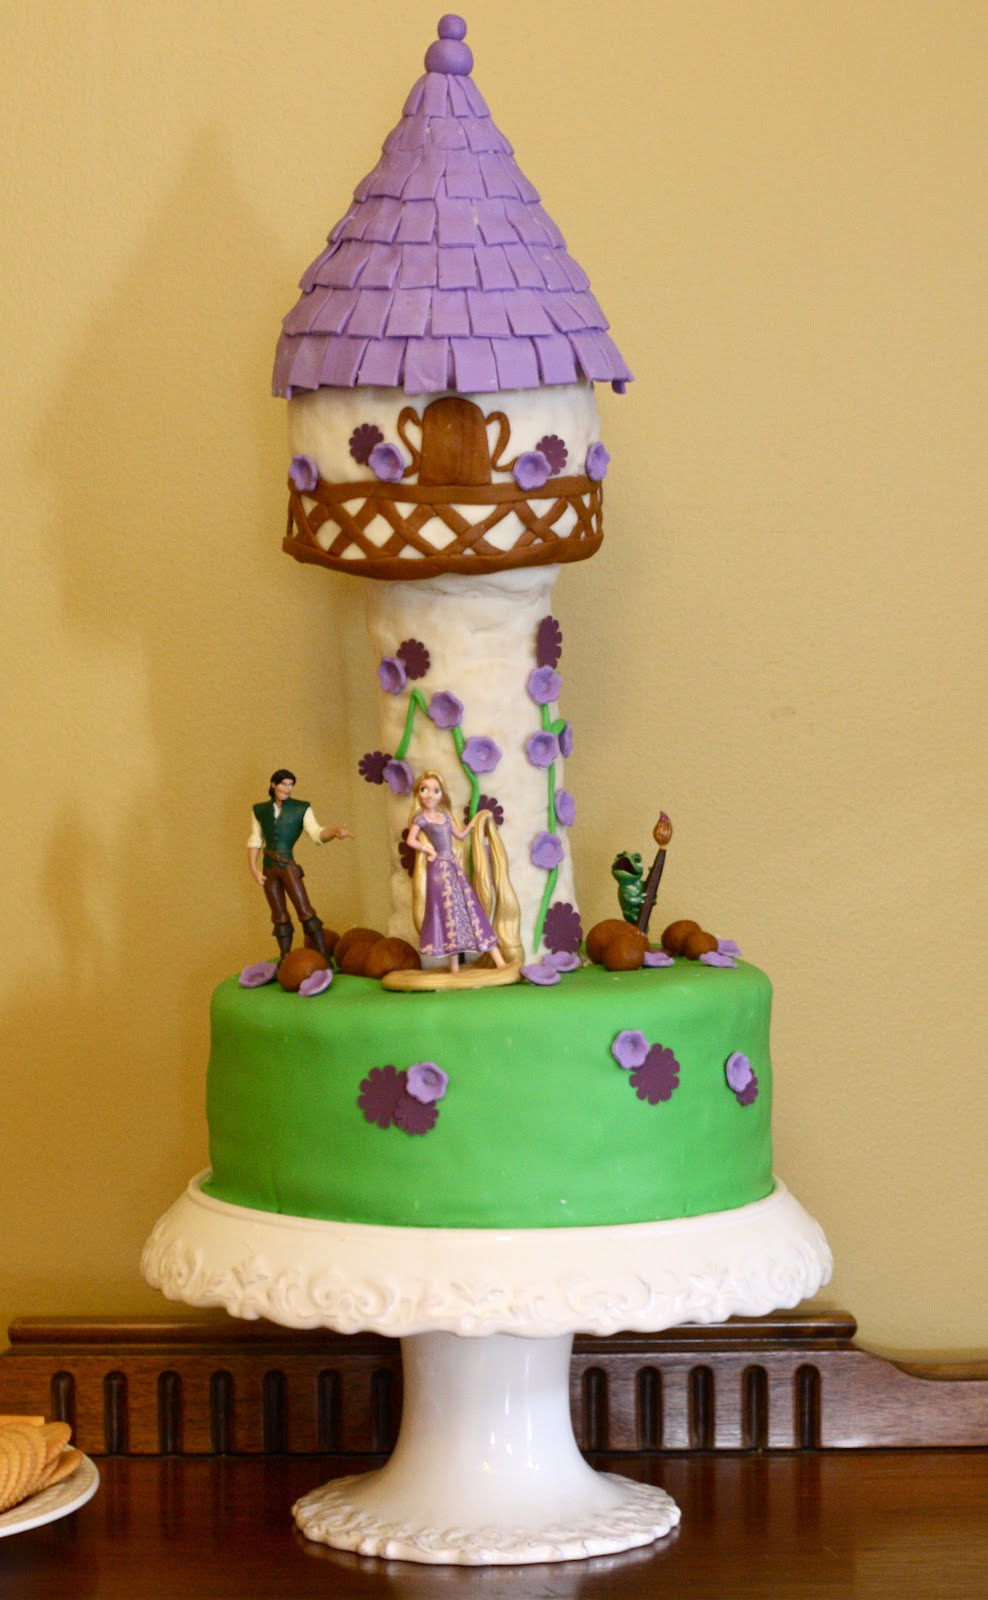 Best ideas about Rapunzel Birthday Cake . Save or Pin At Second Street Rapunzel s birthday Now.